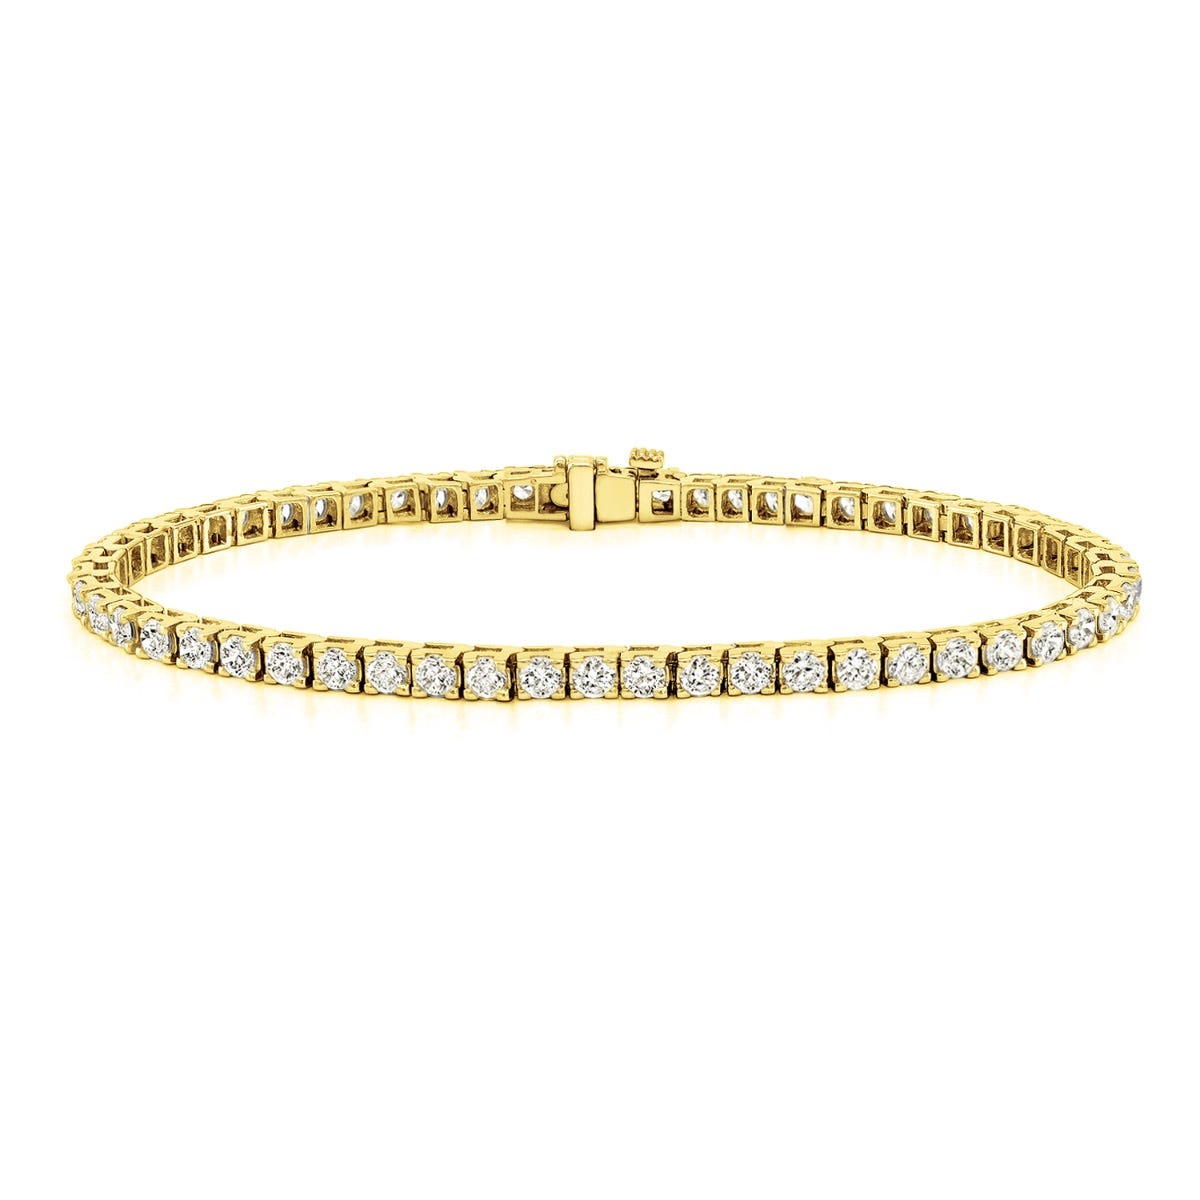 2.50ctw. 4-Prong Square Link Diamond Tennis Bracelet in 14K Yellow Gold (HI, SI1-SI2)